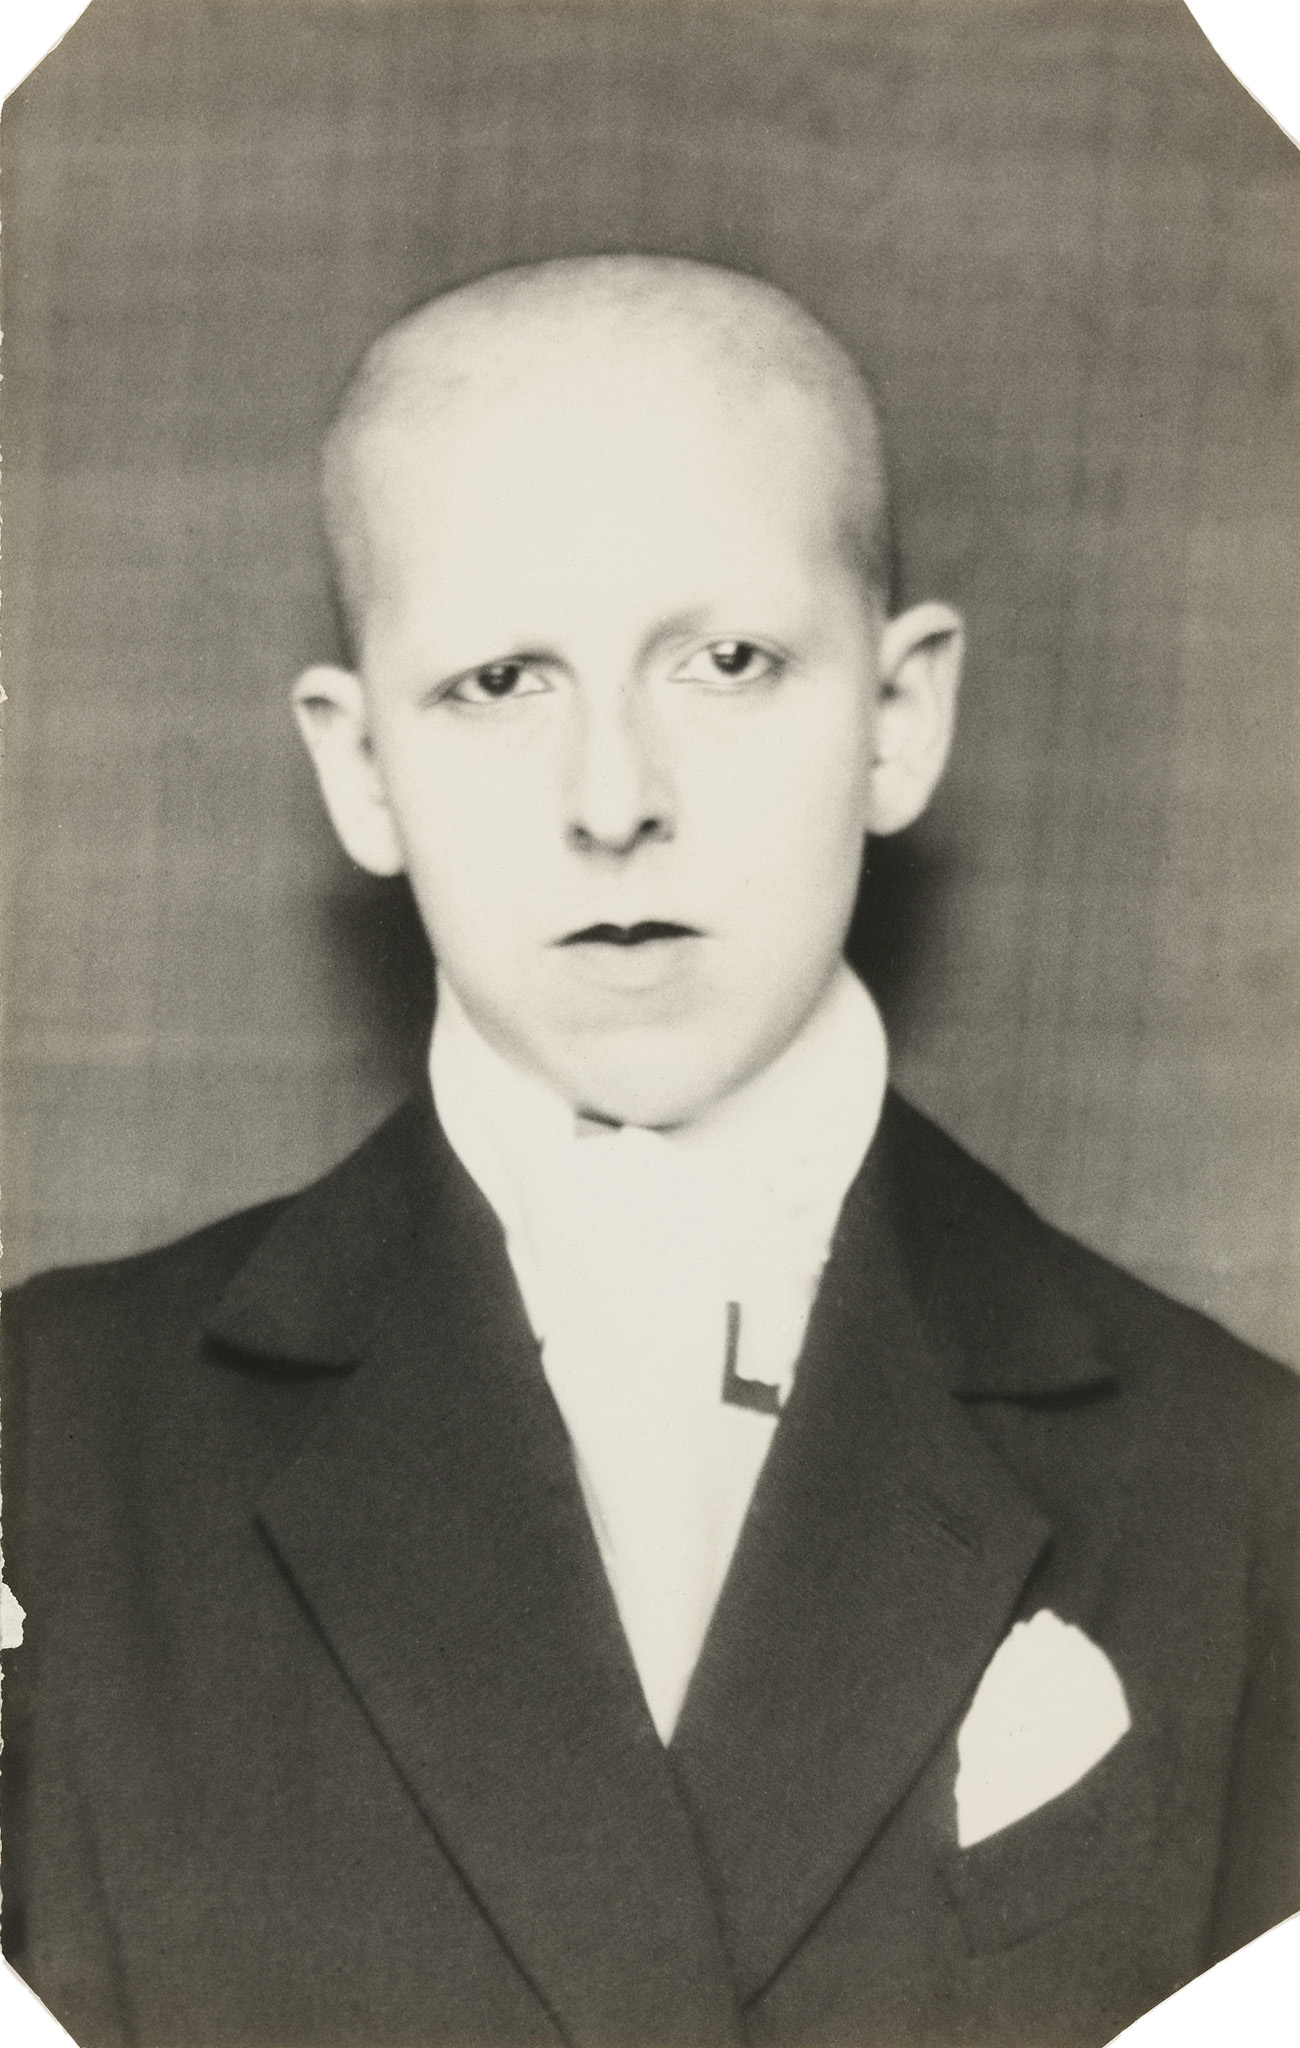 Fotó: Claude Cahun: Self-portrait (as a dandy, head and shoulders), 1921-22 © The Museum of Modern Art, New York/Thomas Walther Collection